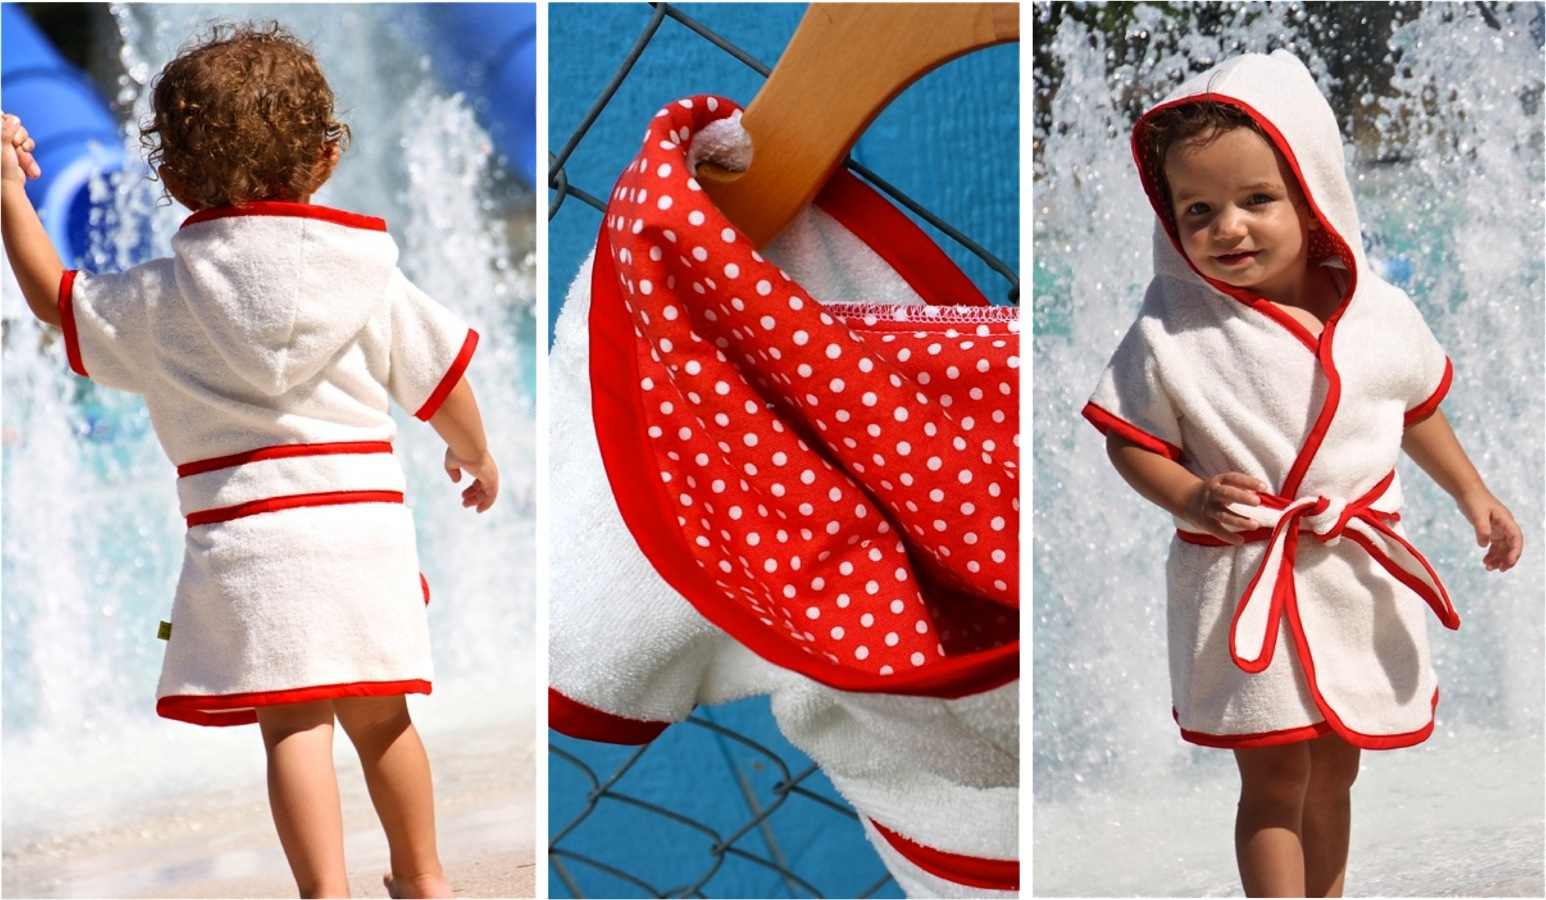 Beach Robes make a trip to the beach and seaside so much easier for kids & parents! Aside from their swimmers, a beach robe is all a child needs to wear to the beach. Aside from their swimmers, a beach robe is all a child needs to wear to the beach.